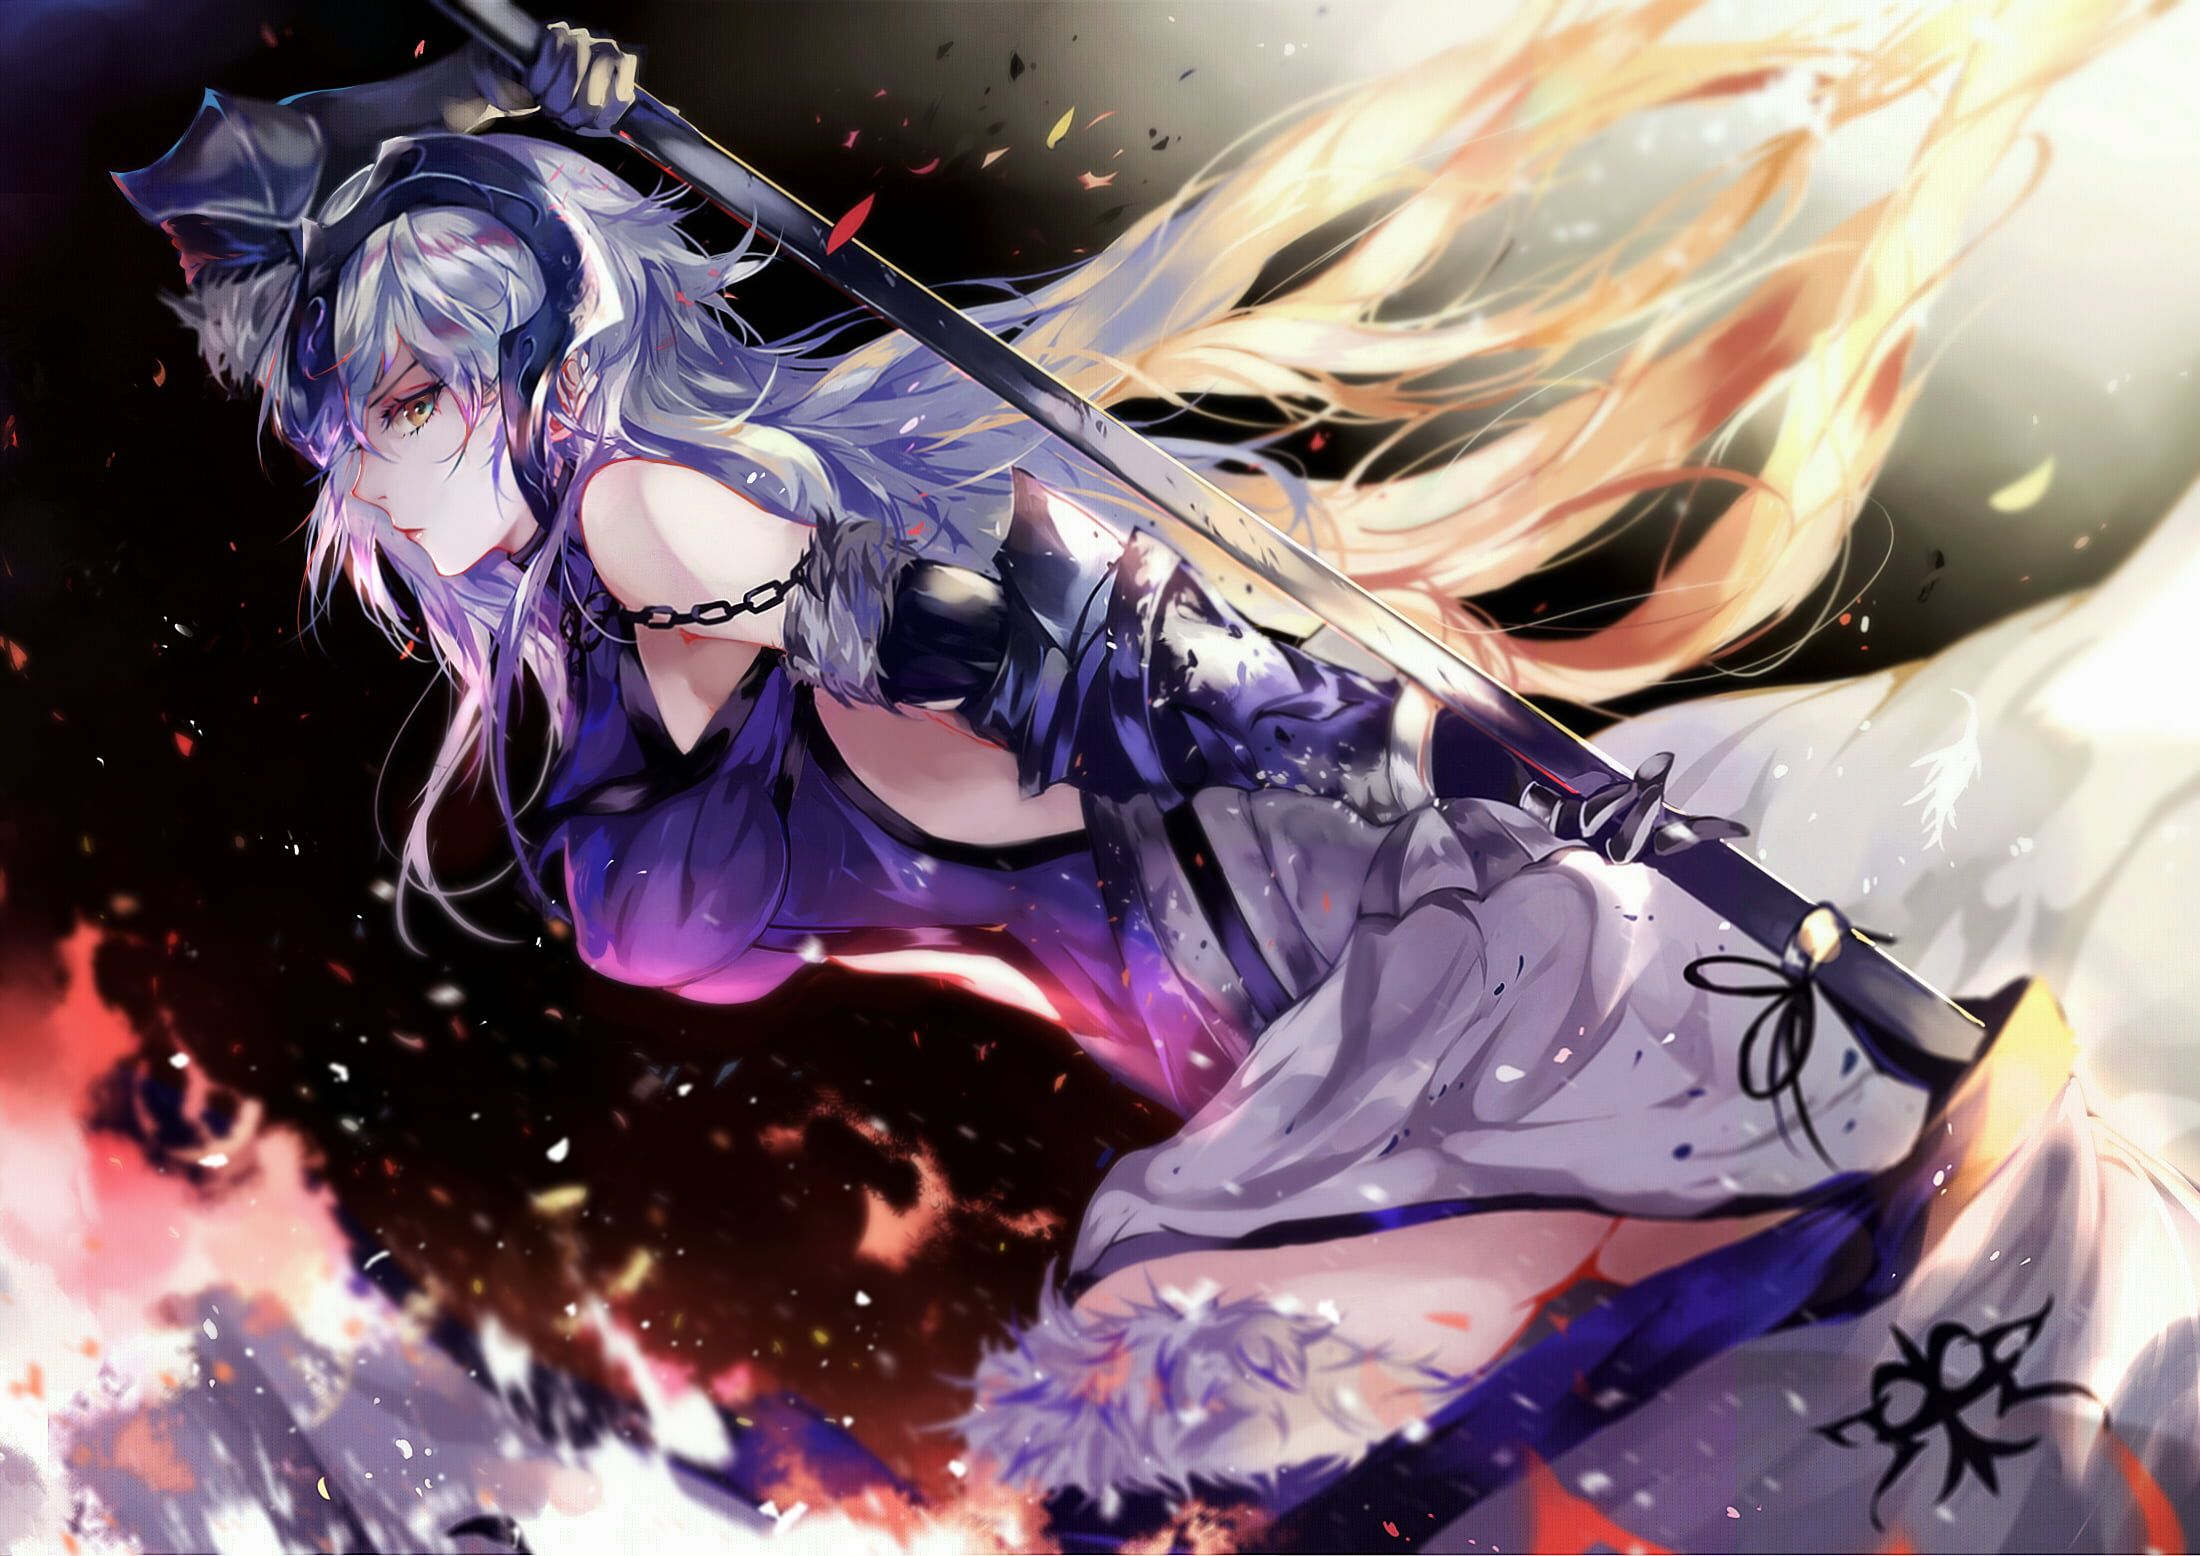 Fate Grand Order Jeanne D Arc Alter Weapon Spear Gray Hair Long Hair Elbow Gloves Thigh Highs Fate Series 1 Joan Of Arc Fate Anime Images Fate Anime Series